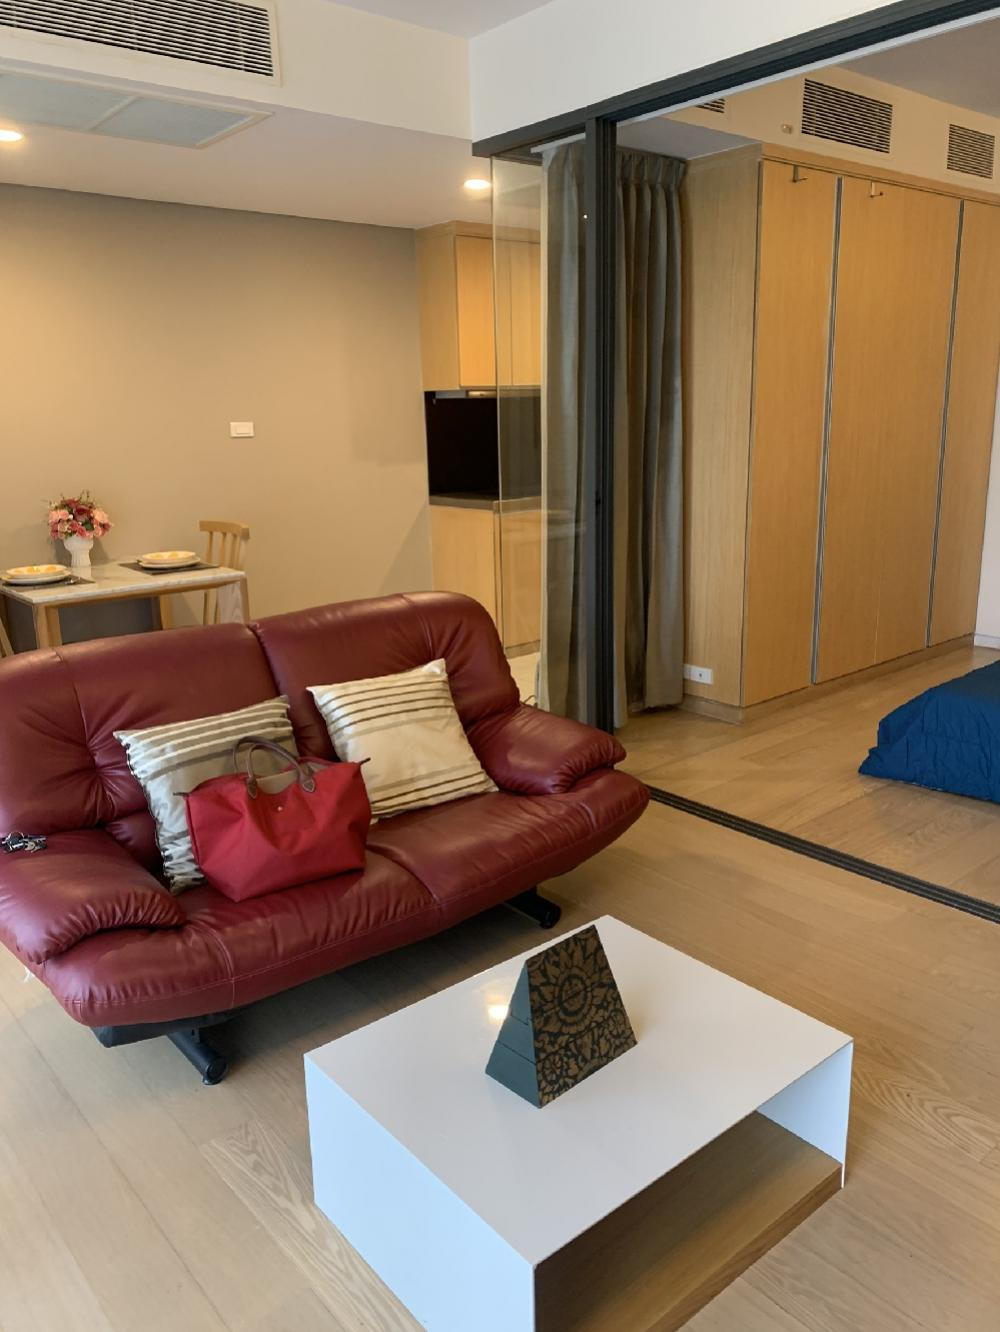 For SaleCondoSukhumvit, Asoke, Thonglor : Hot sale !! Siamese Gioia condo, Sukhumvit 31 near Fuji supermarket, beautiful room with fully furnished + electric appliances, special price at only 5.20 million baht.